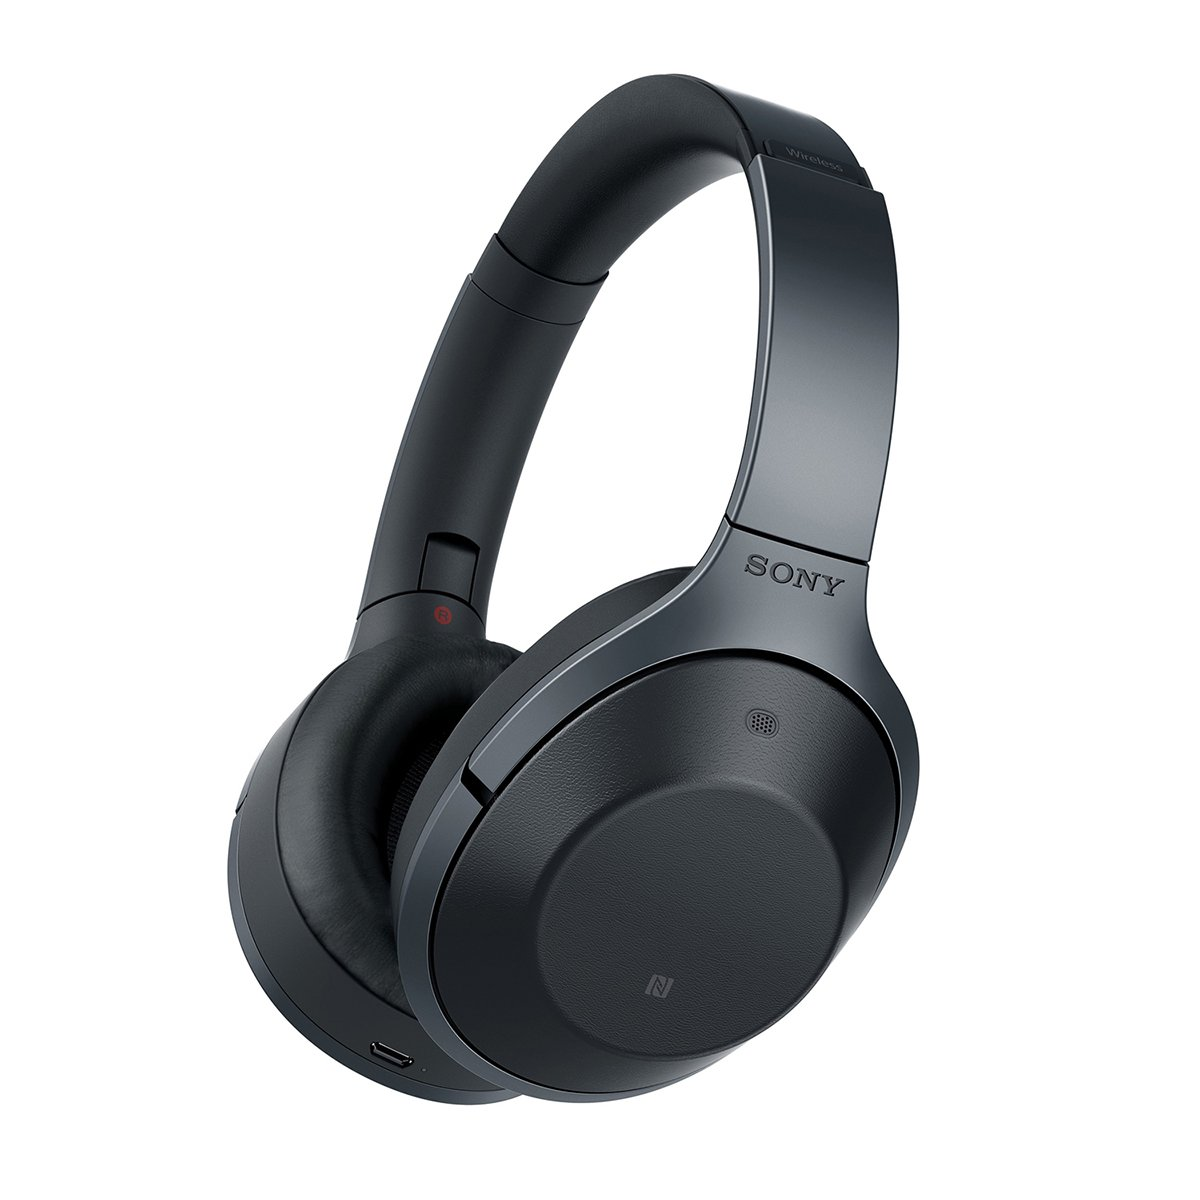 Sony MDR-1000X Wireless Noise Canceling Headphones